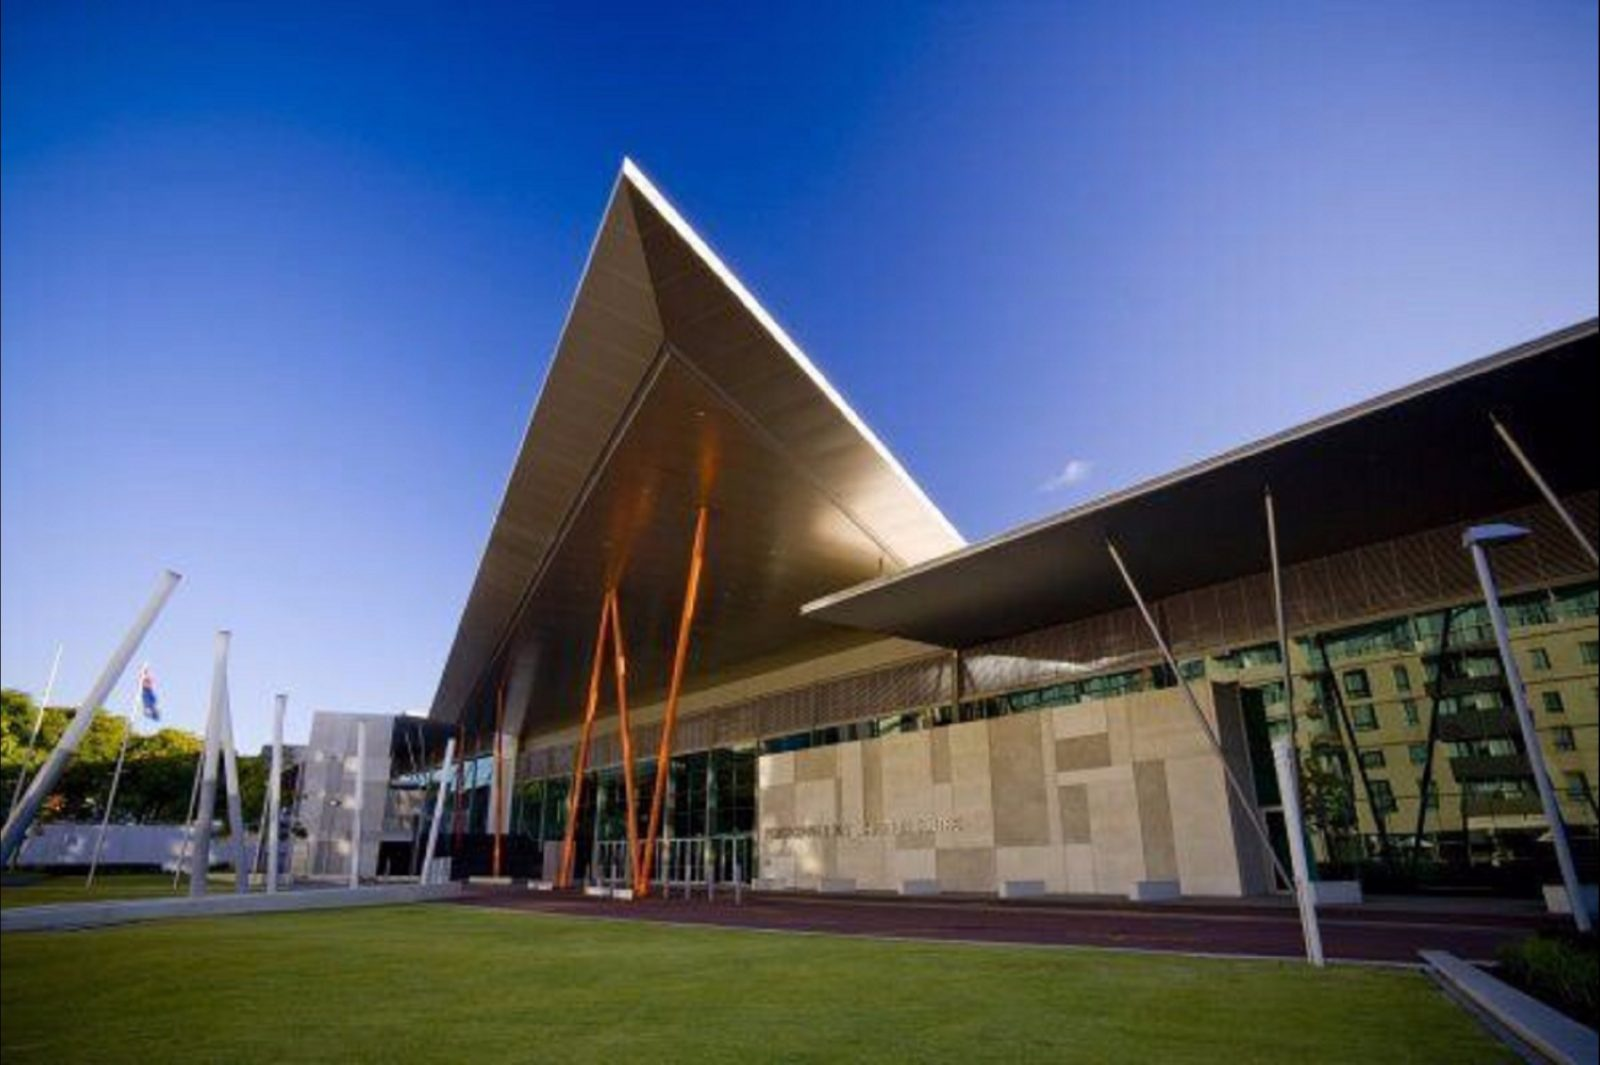 Perth Convention Centre, Perth, Western Australia